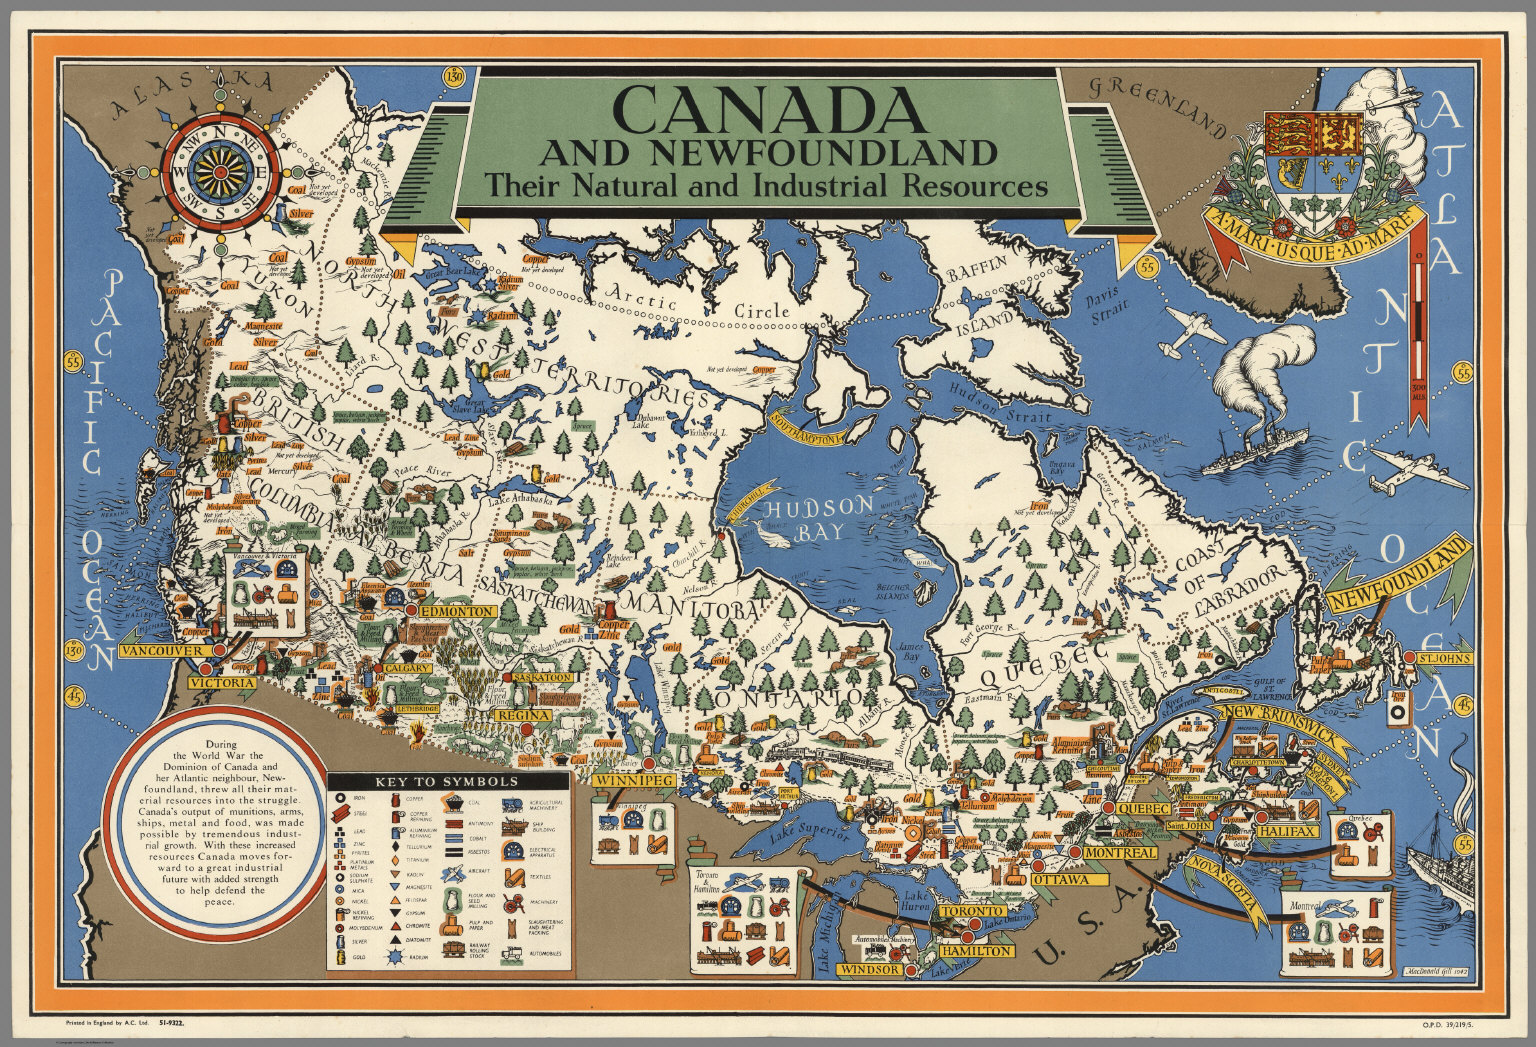 Canada And Newfoundland Their Natural And Industrial Resources